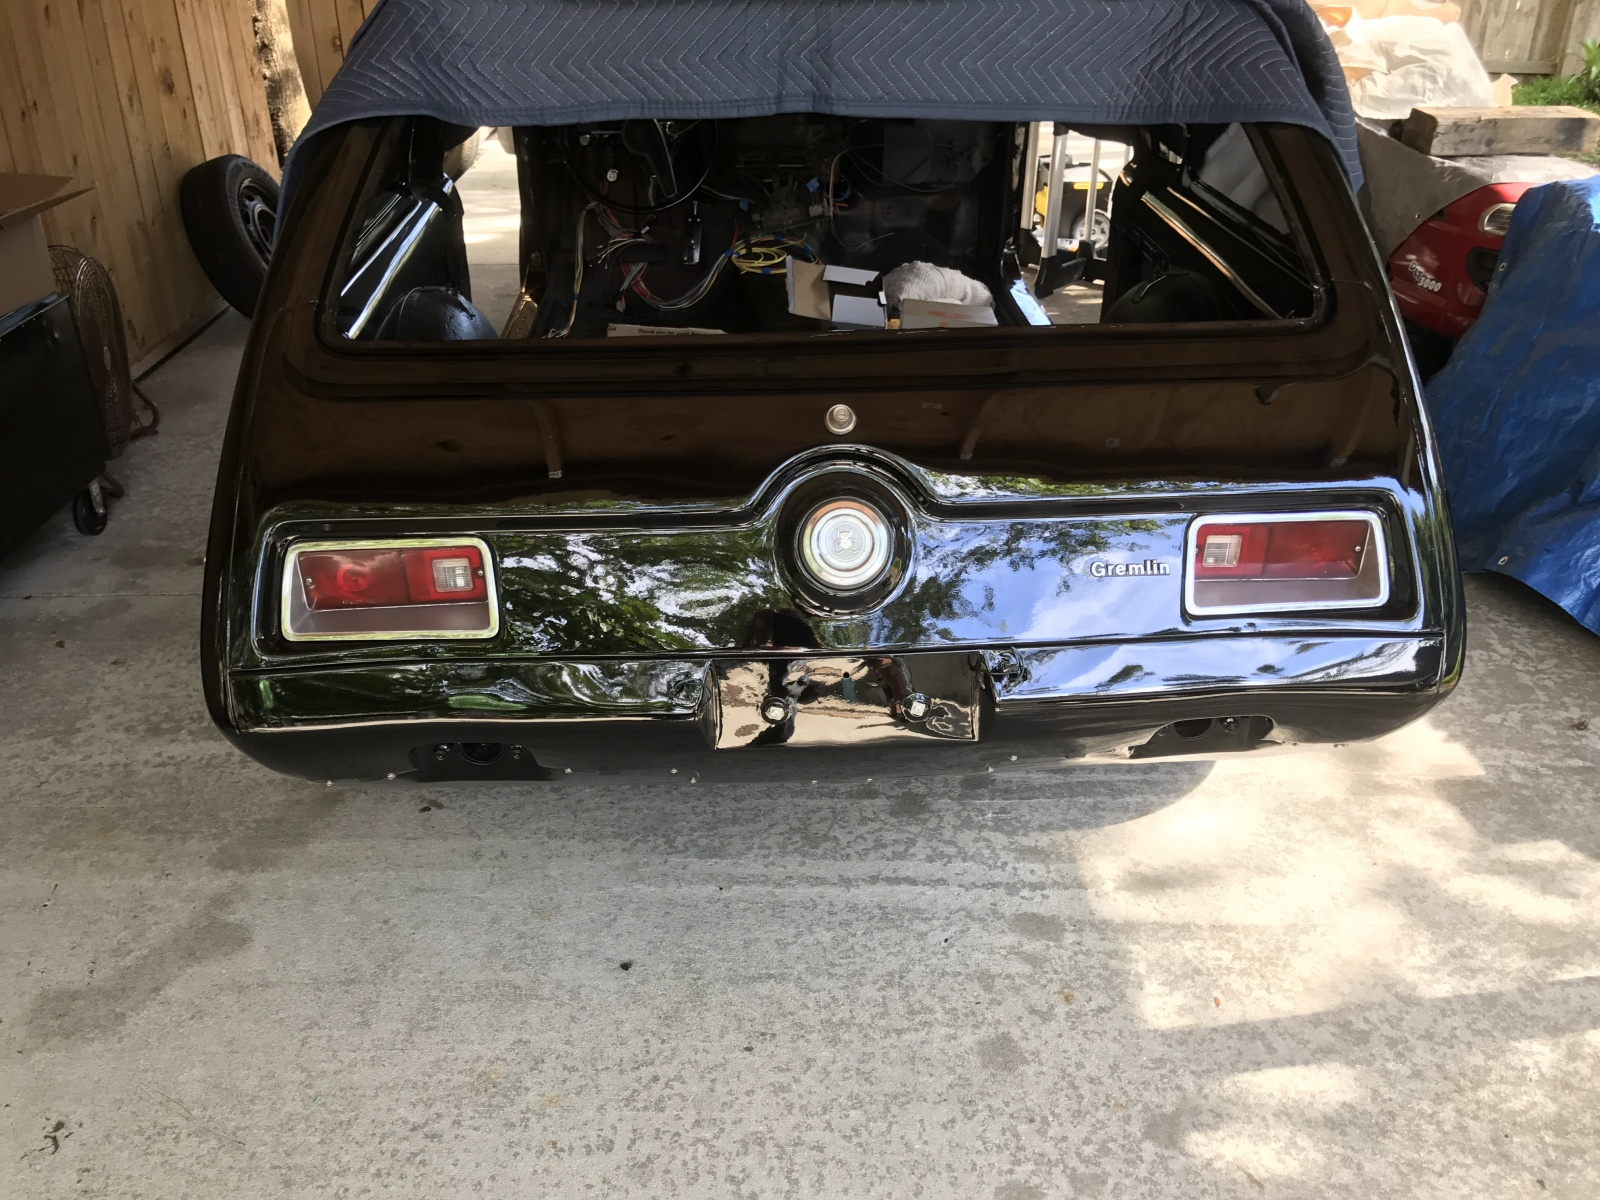 How Much Is A Ticket For Driving Without A License >> Build A Sleeper? 1974 AMC Gremlin